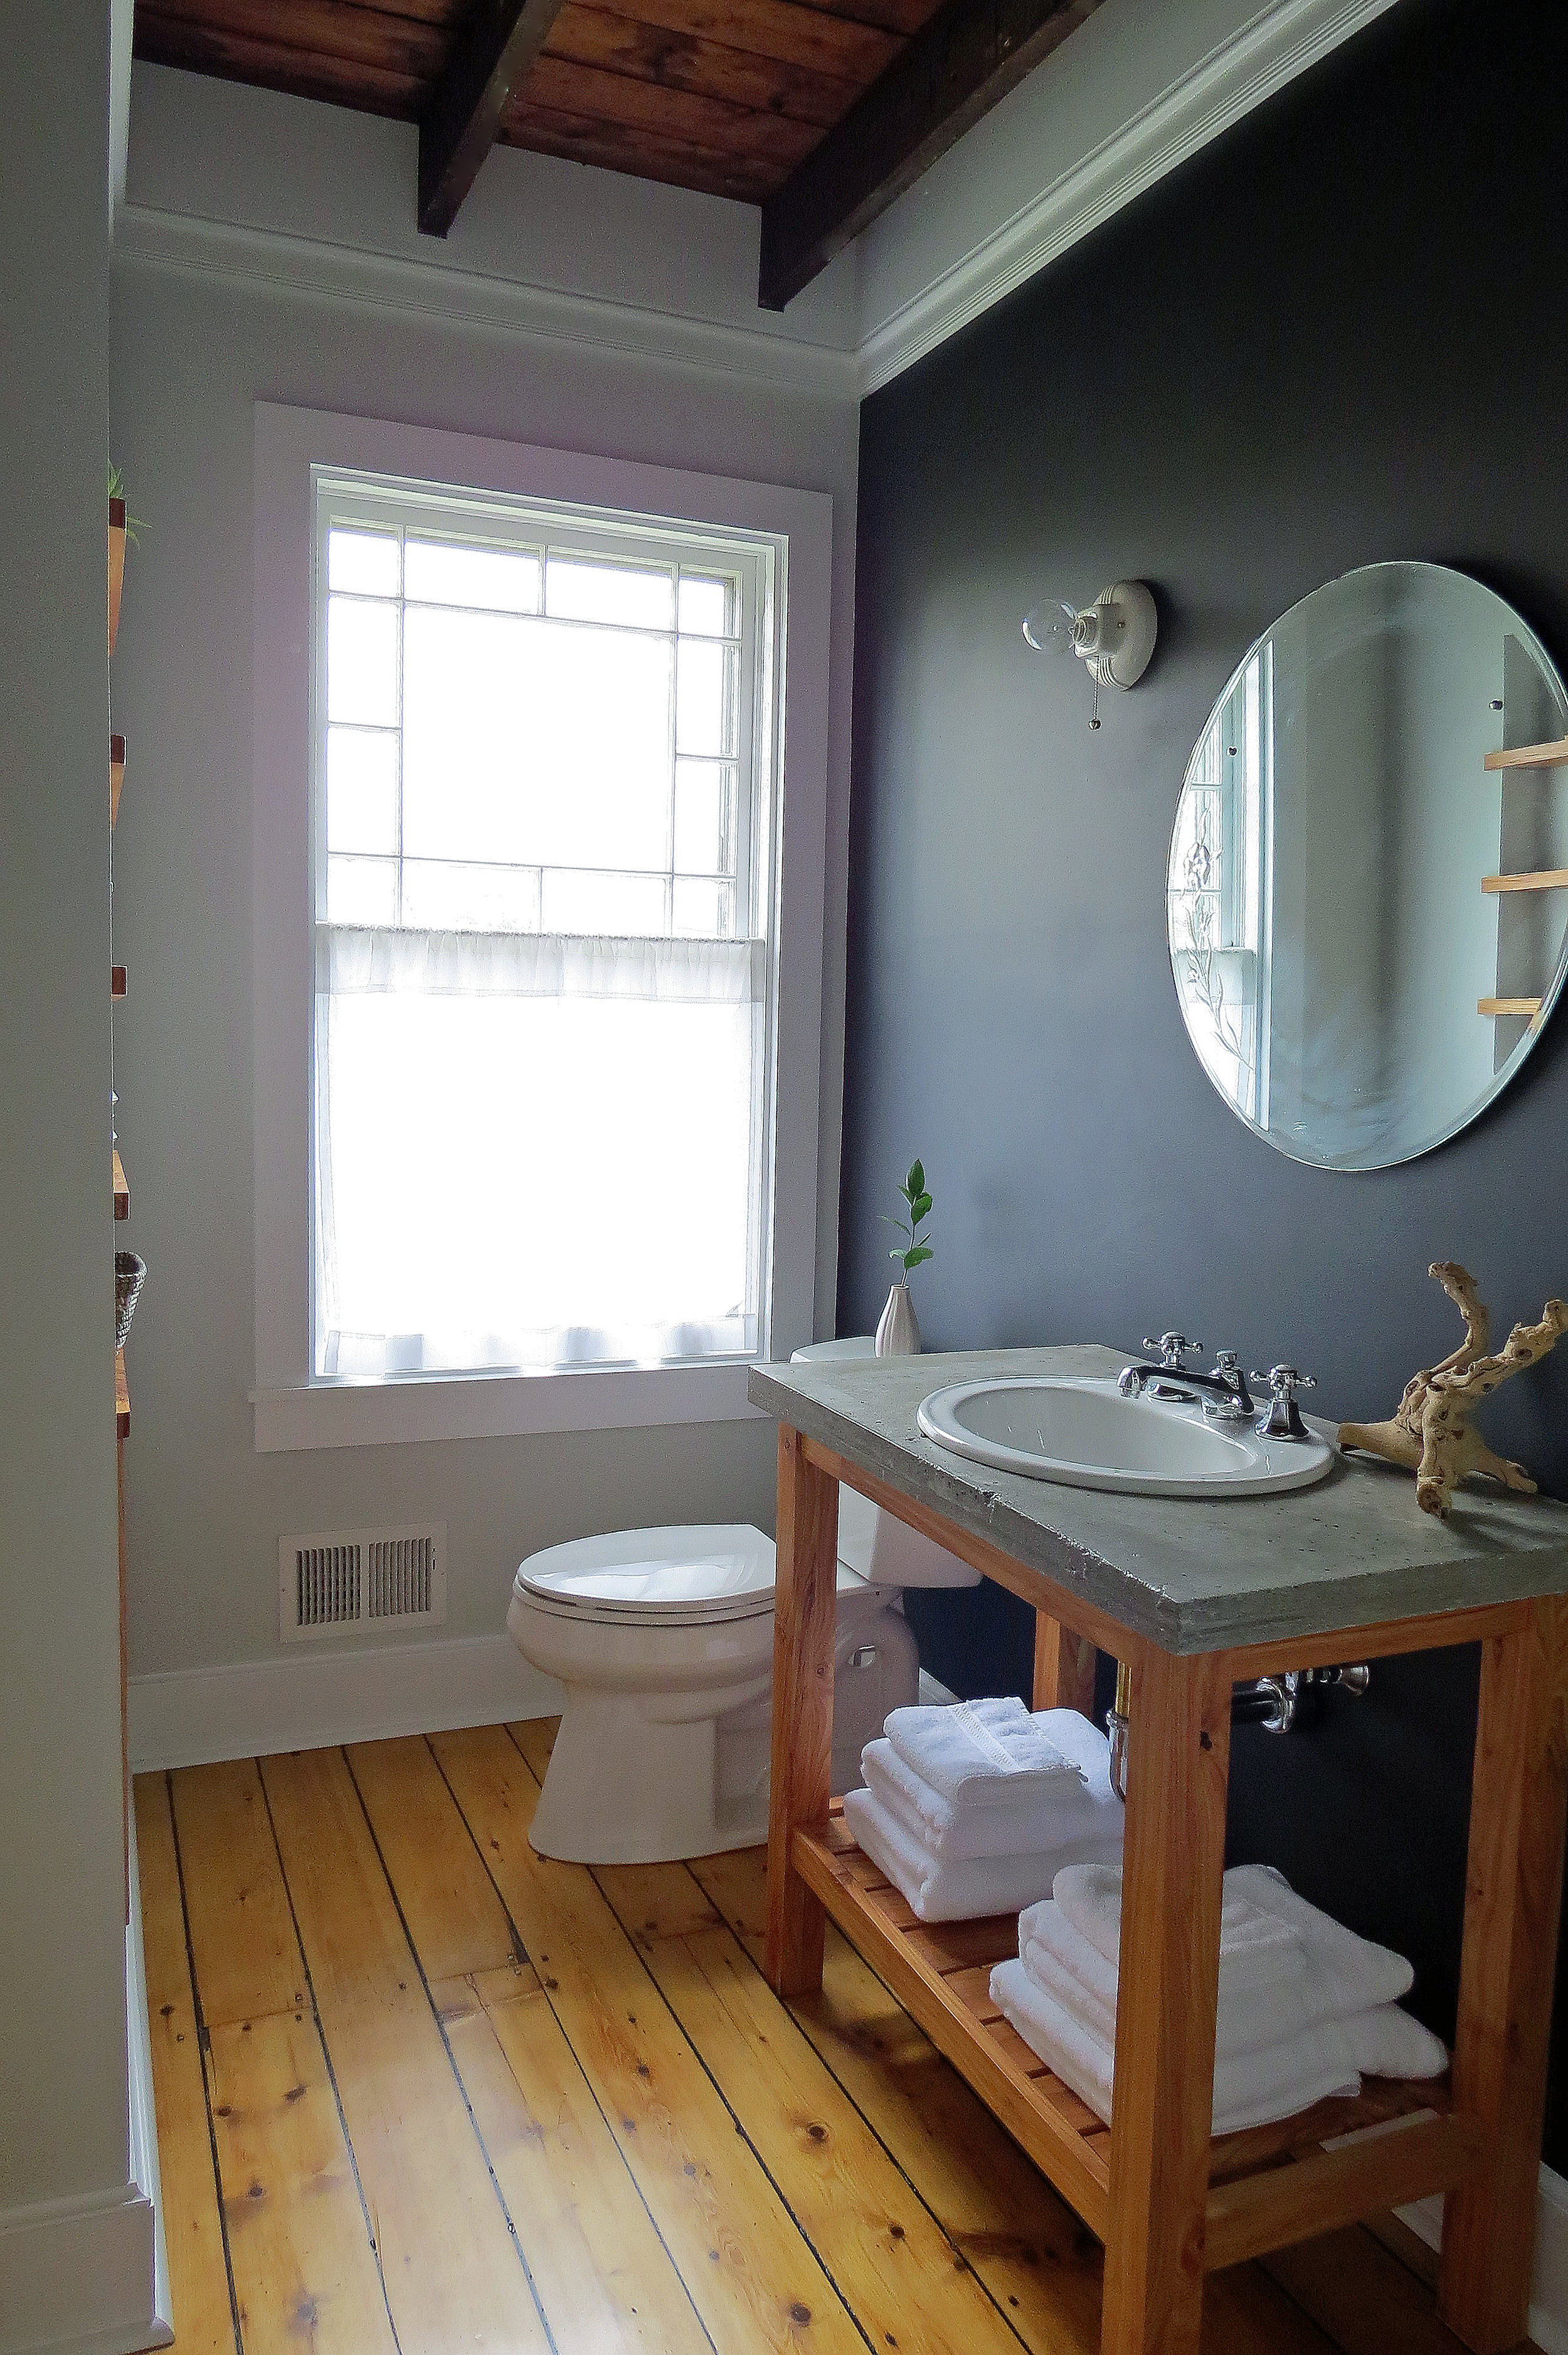 Guest Room 2 Bath - AFTER.jpg